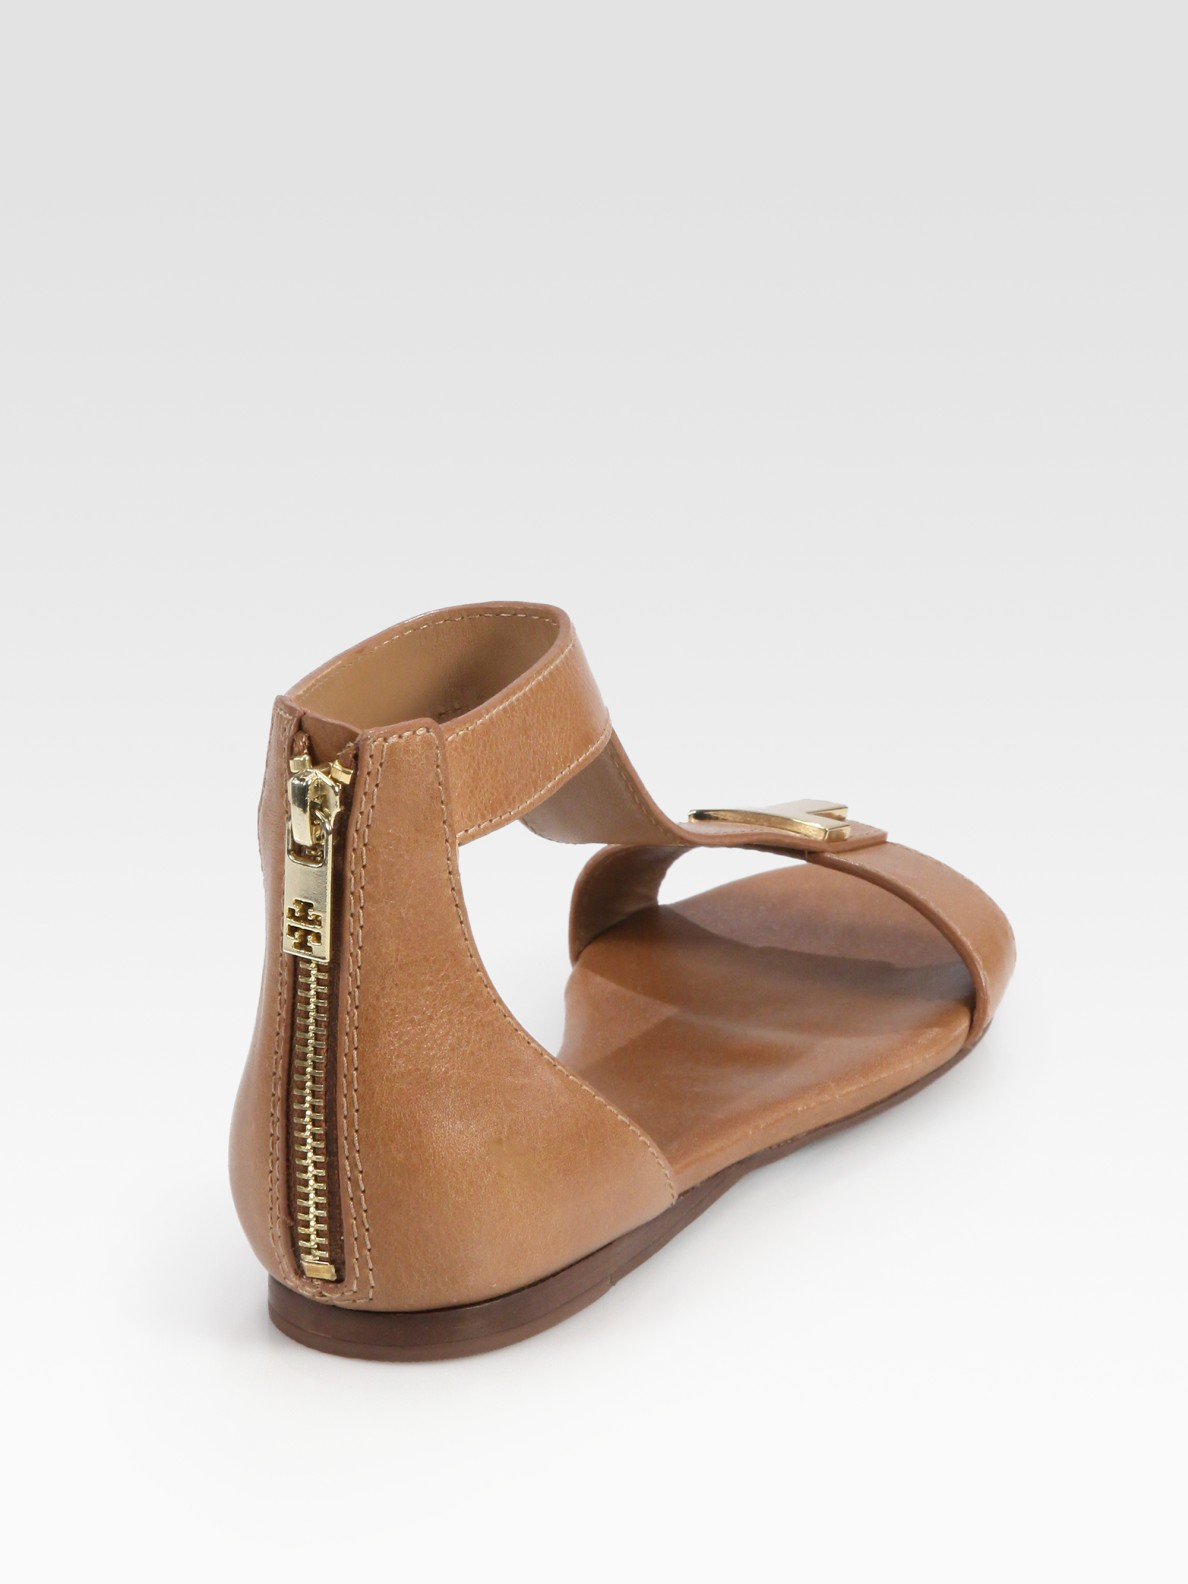 51c1988c1207 Lyst - Tory Burch Casey Leather T-strap Zip Sandals in Brown